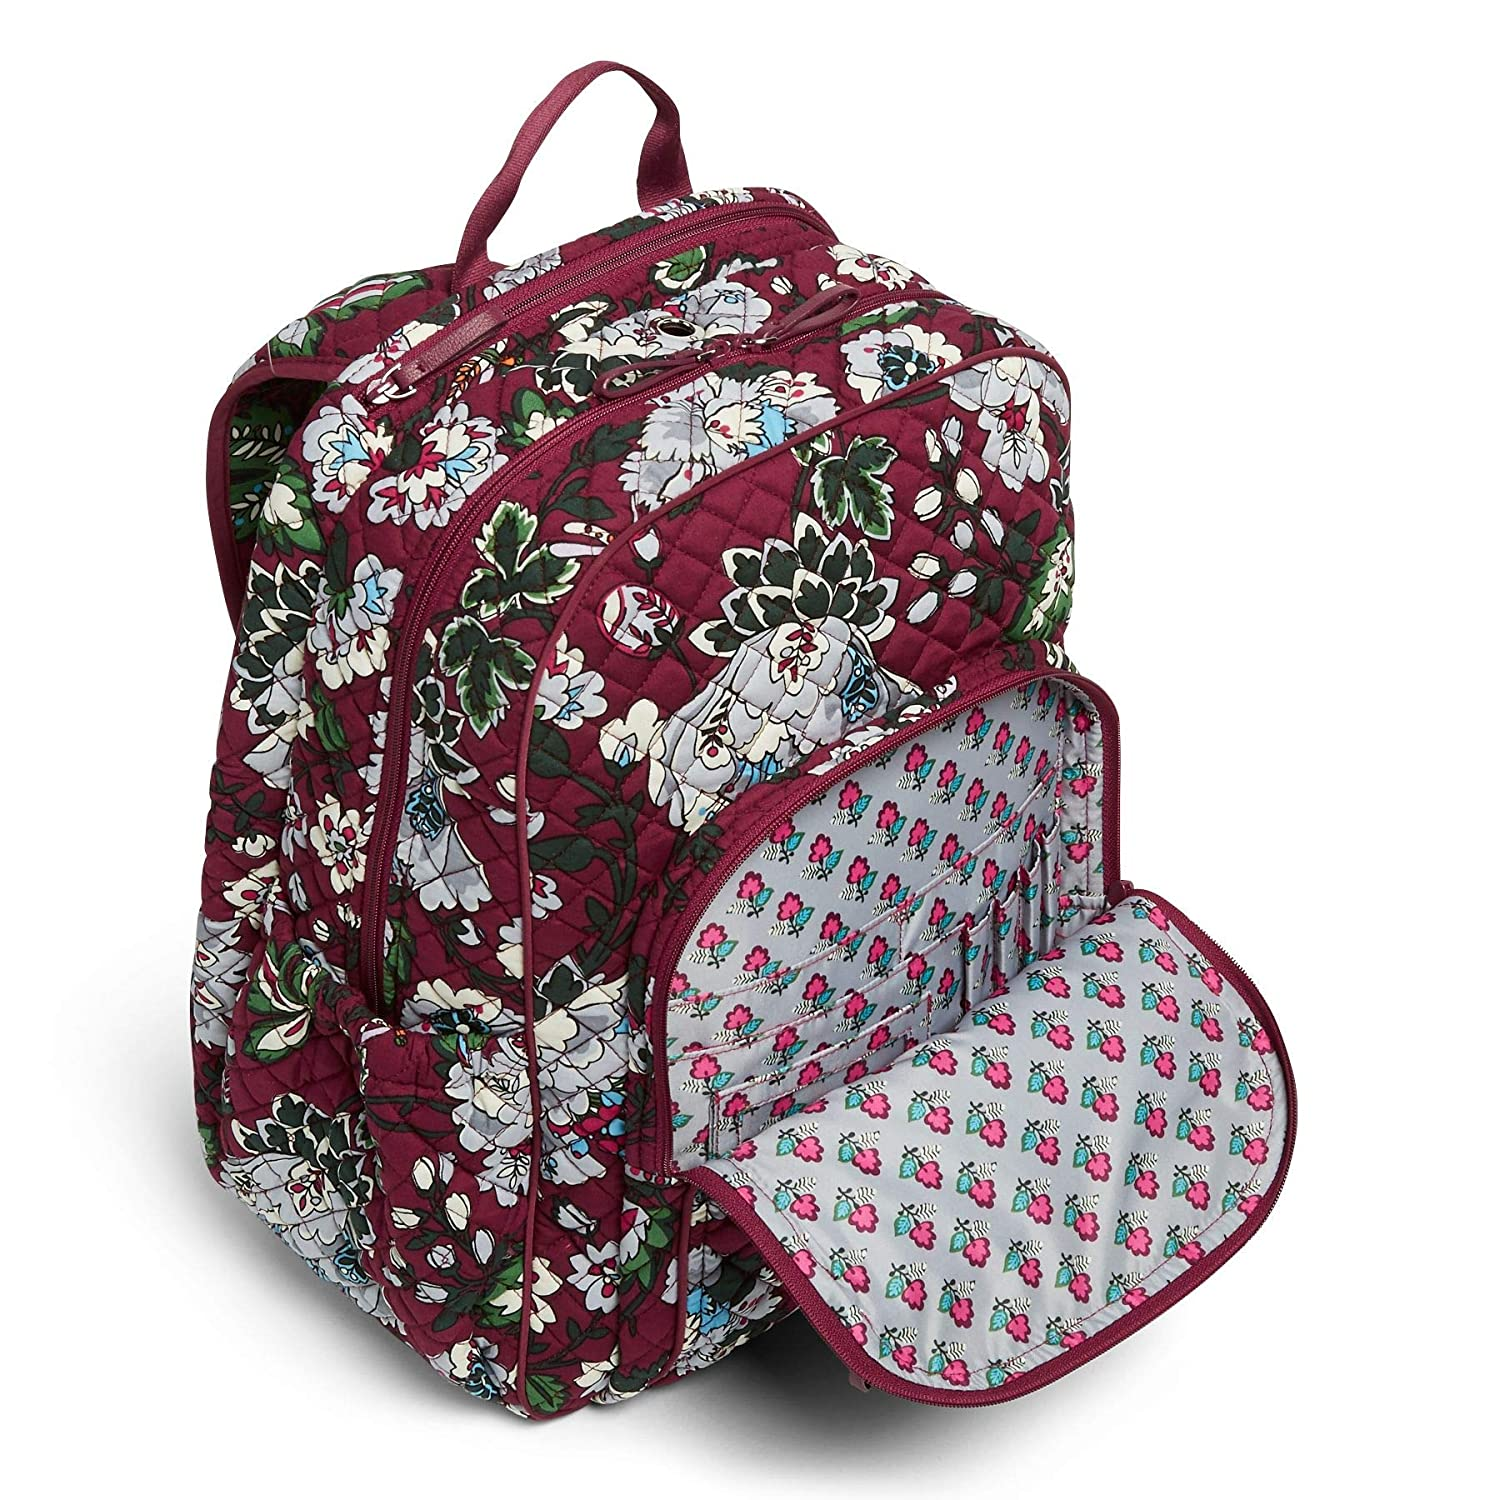 Amazon.com  Vera Bradley Iconic Campus Backpack c72a51097193f